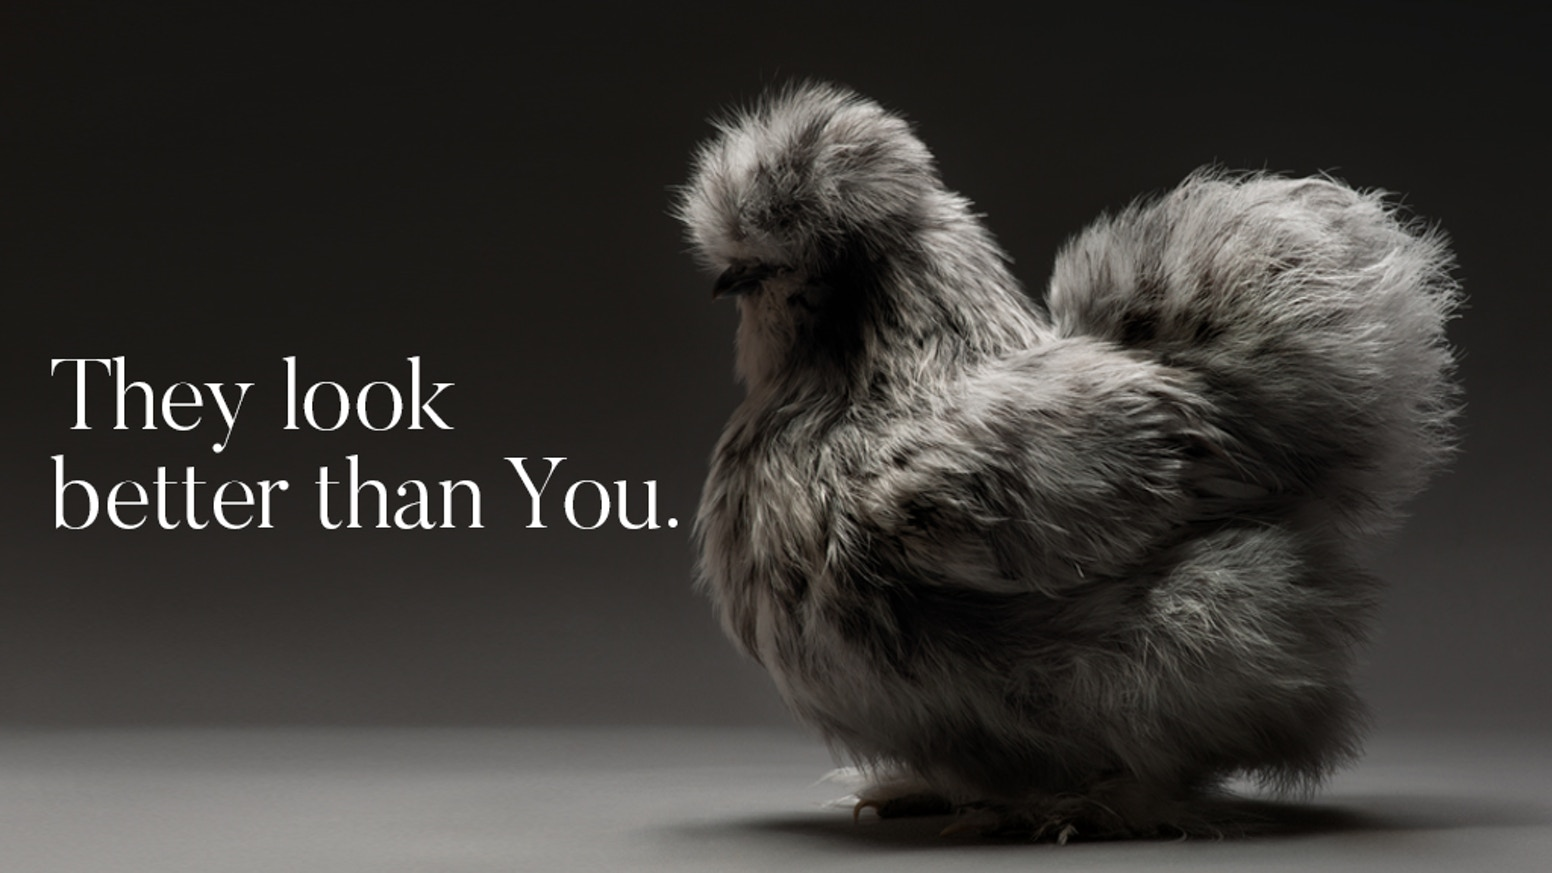 Bravest Chicken Ever: The Most Stunning High Quality Chicken Book Photos Ever